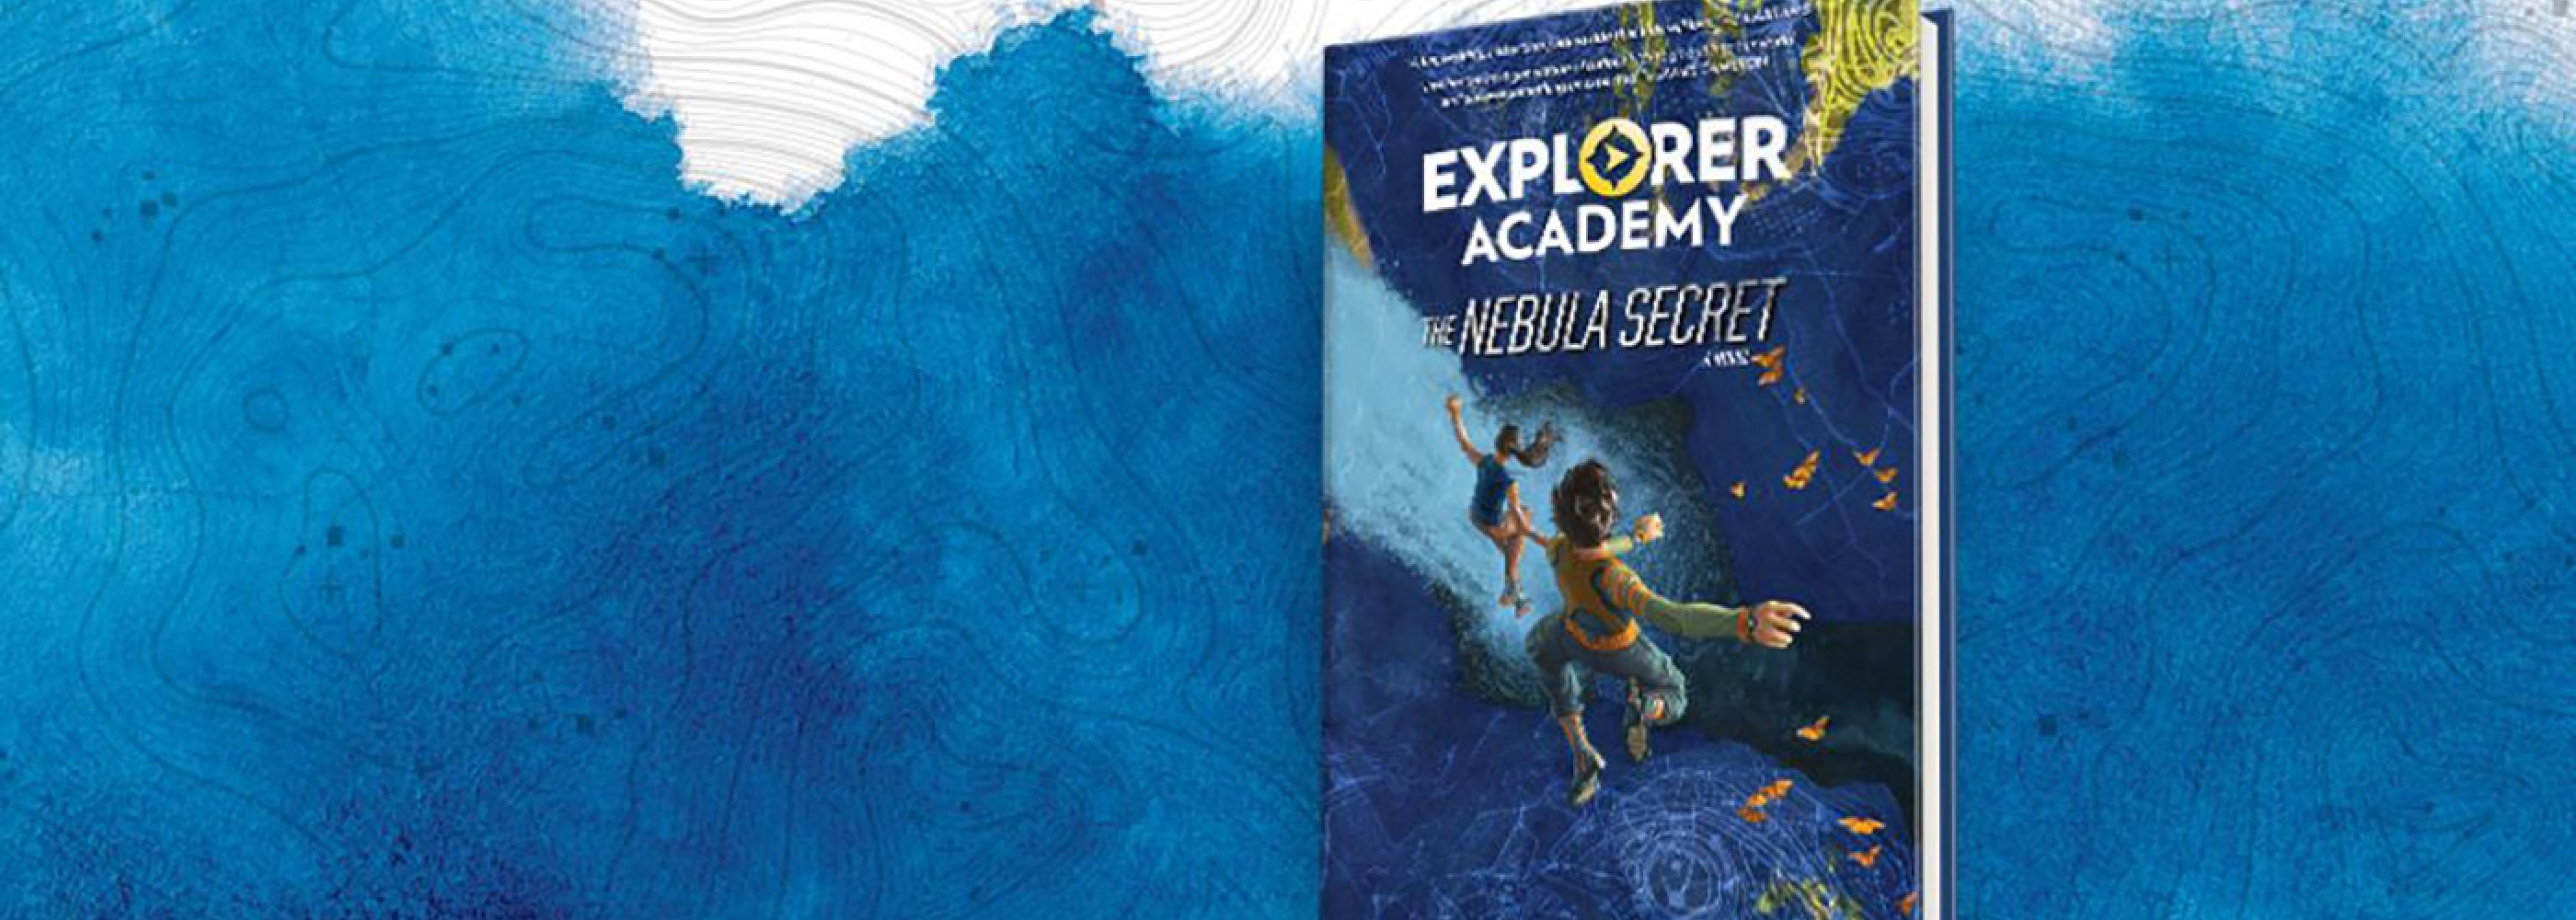 nebula secret book on blue background